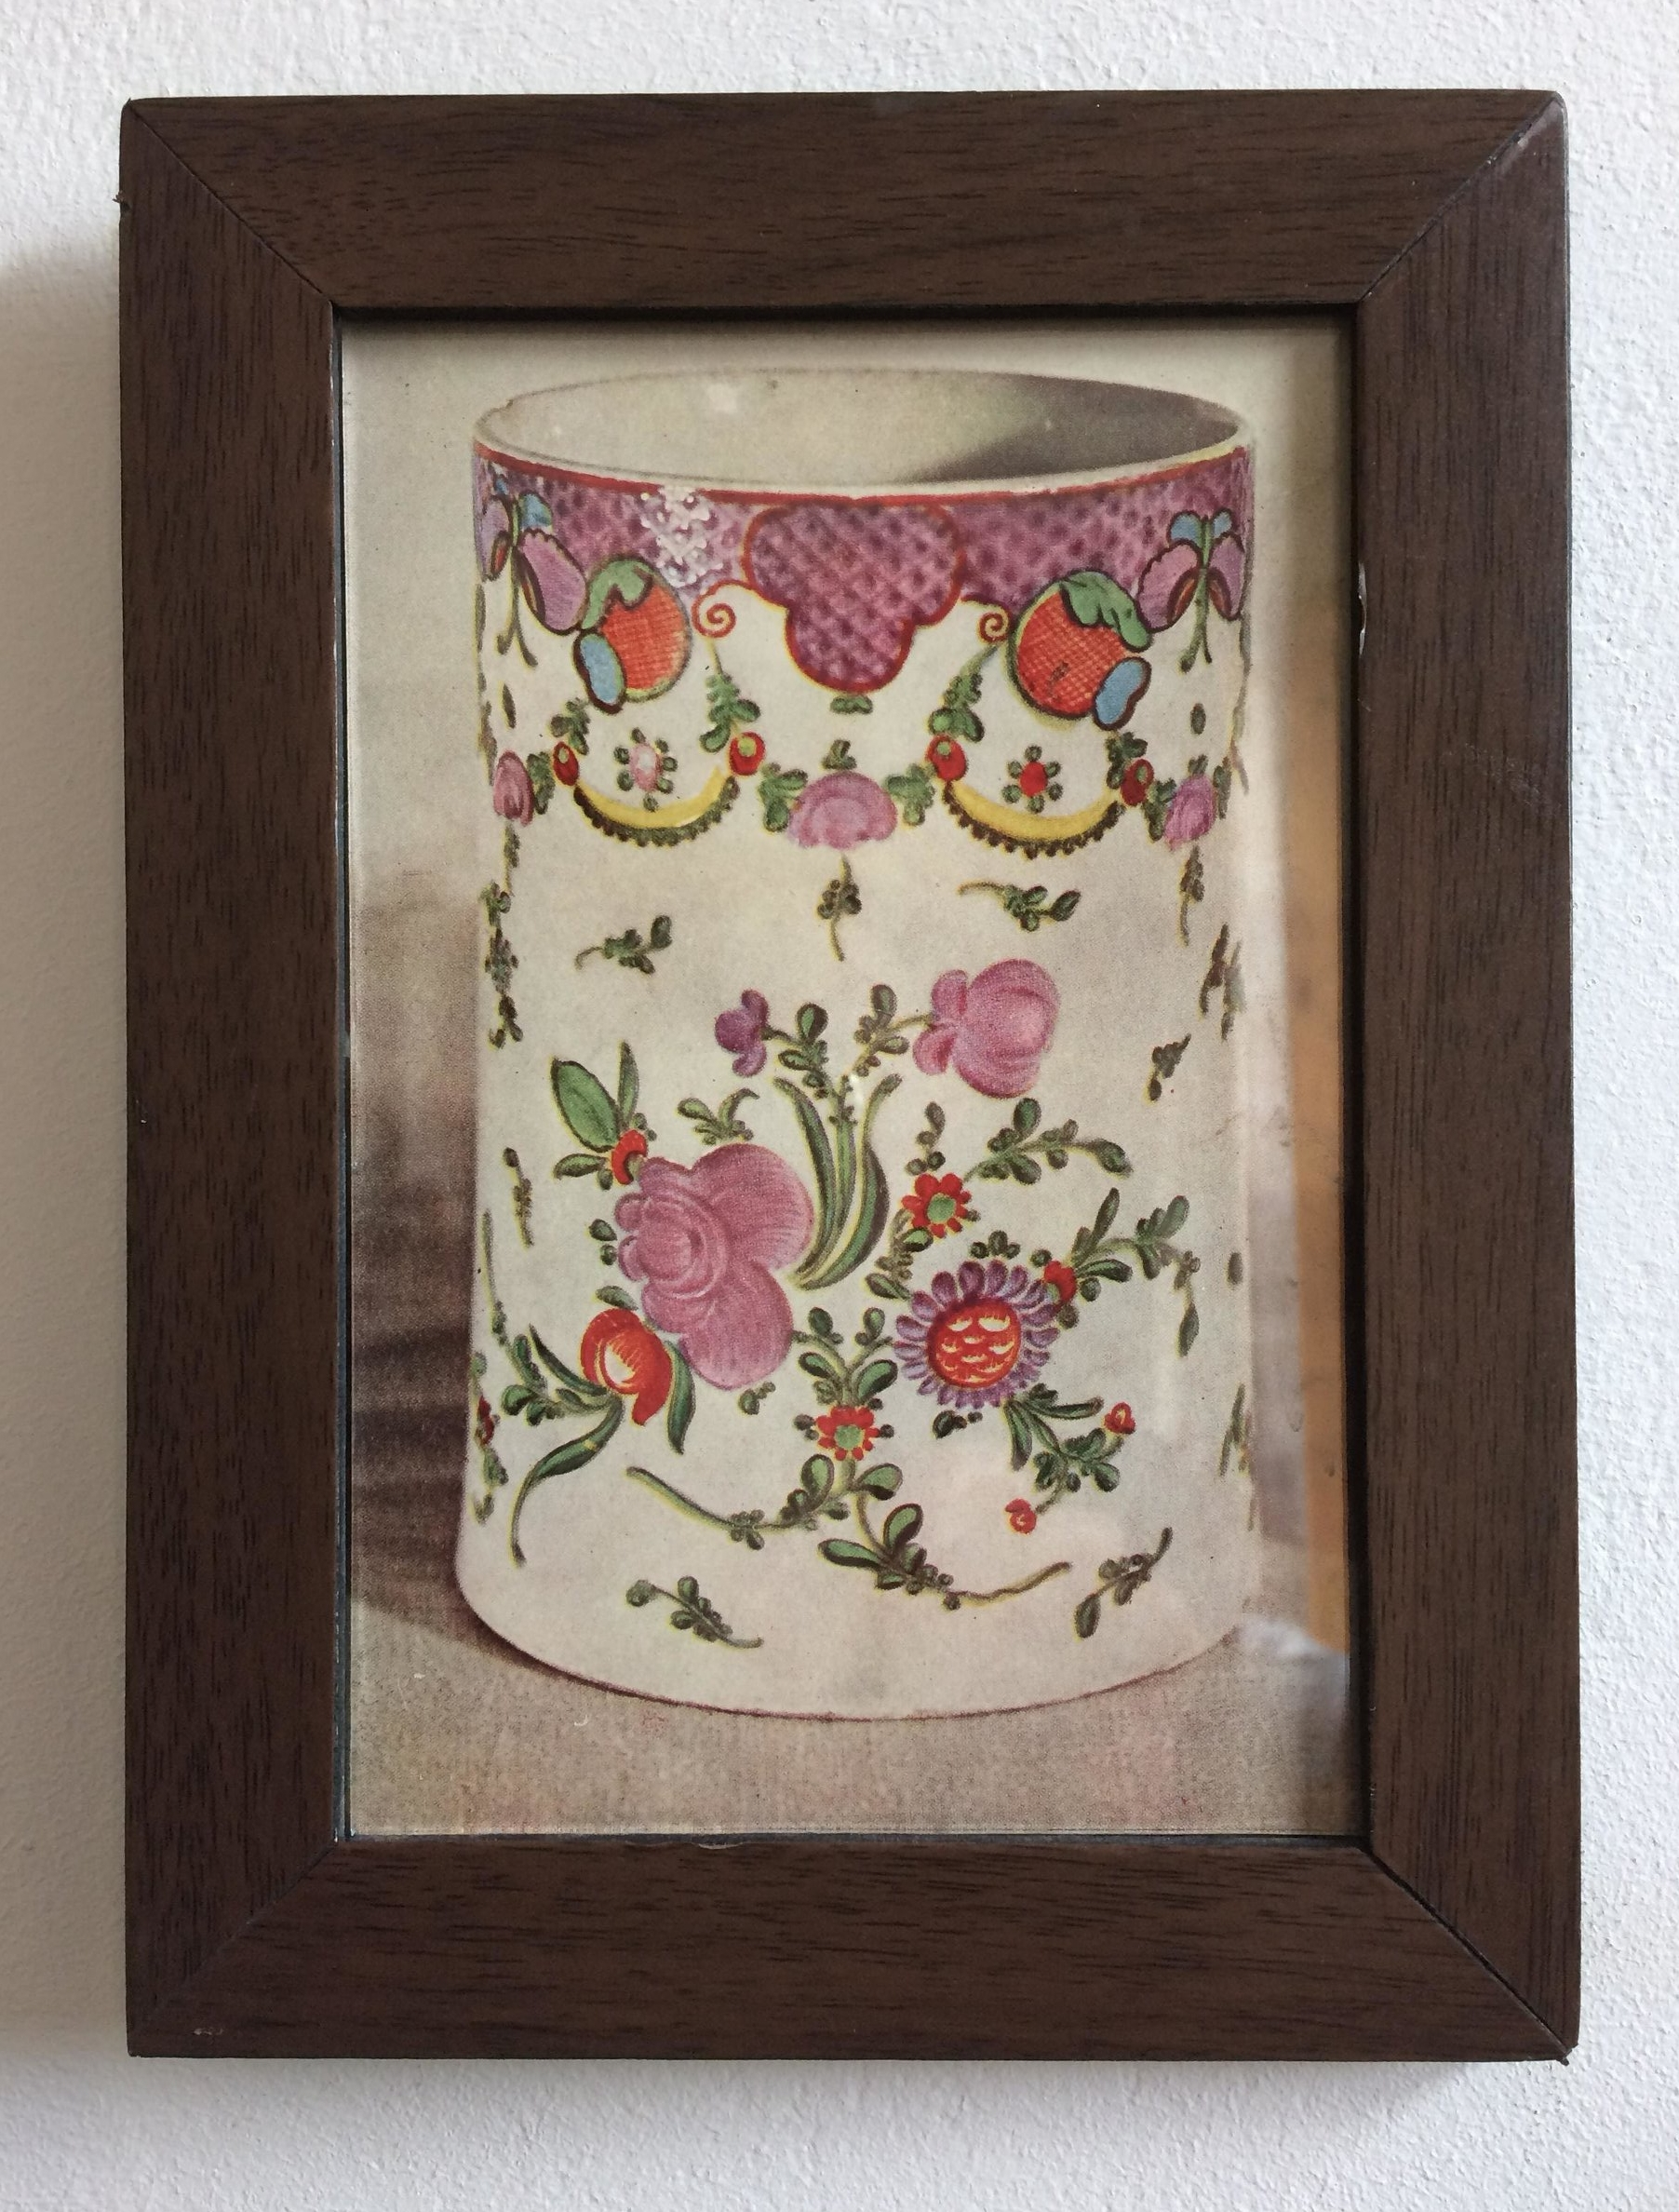 Staffordshire pottery vase - framed photograph .